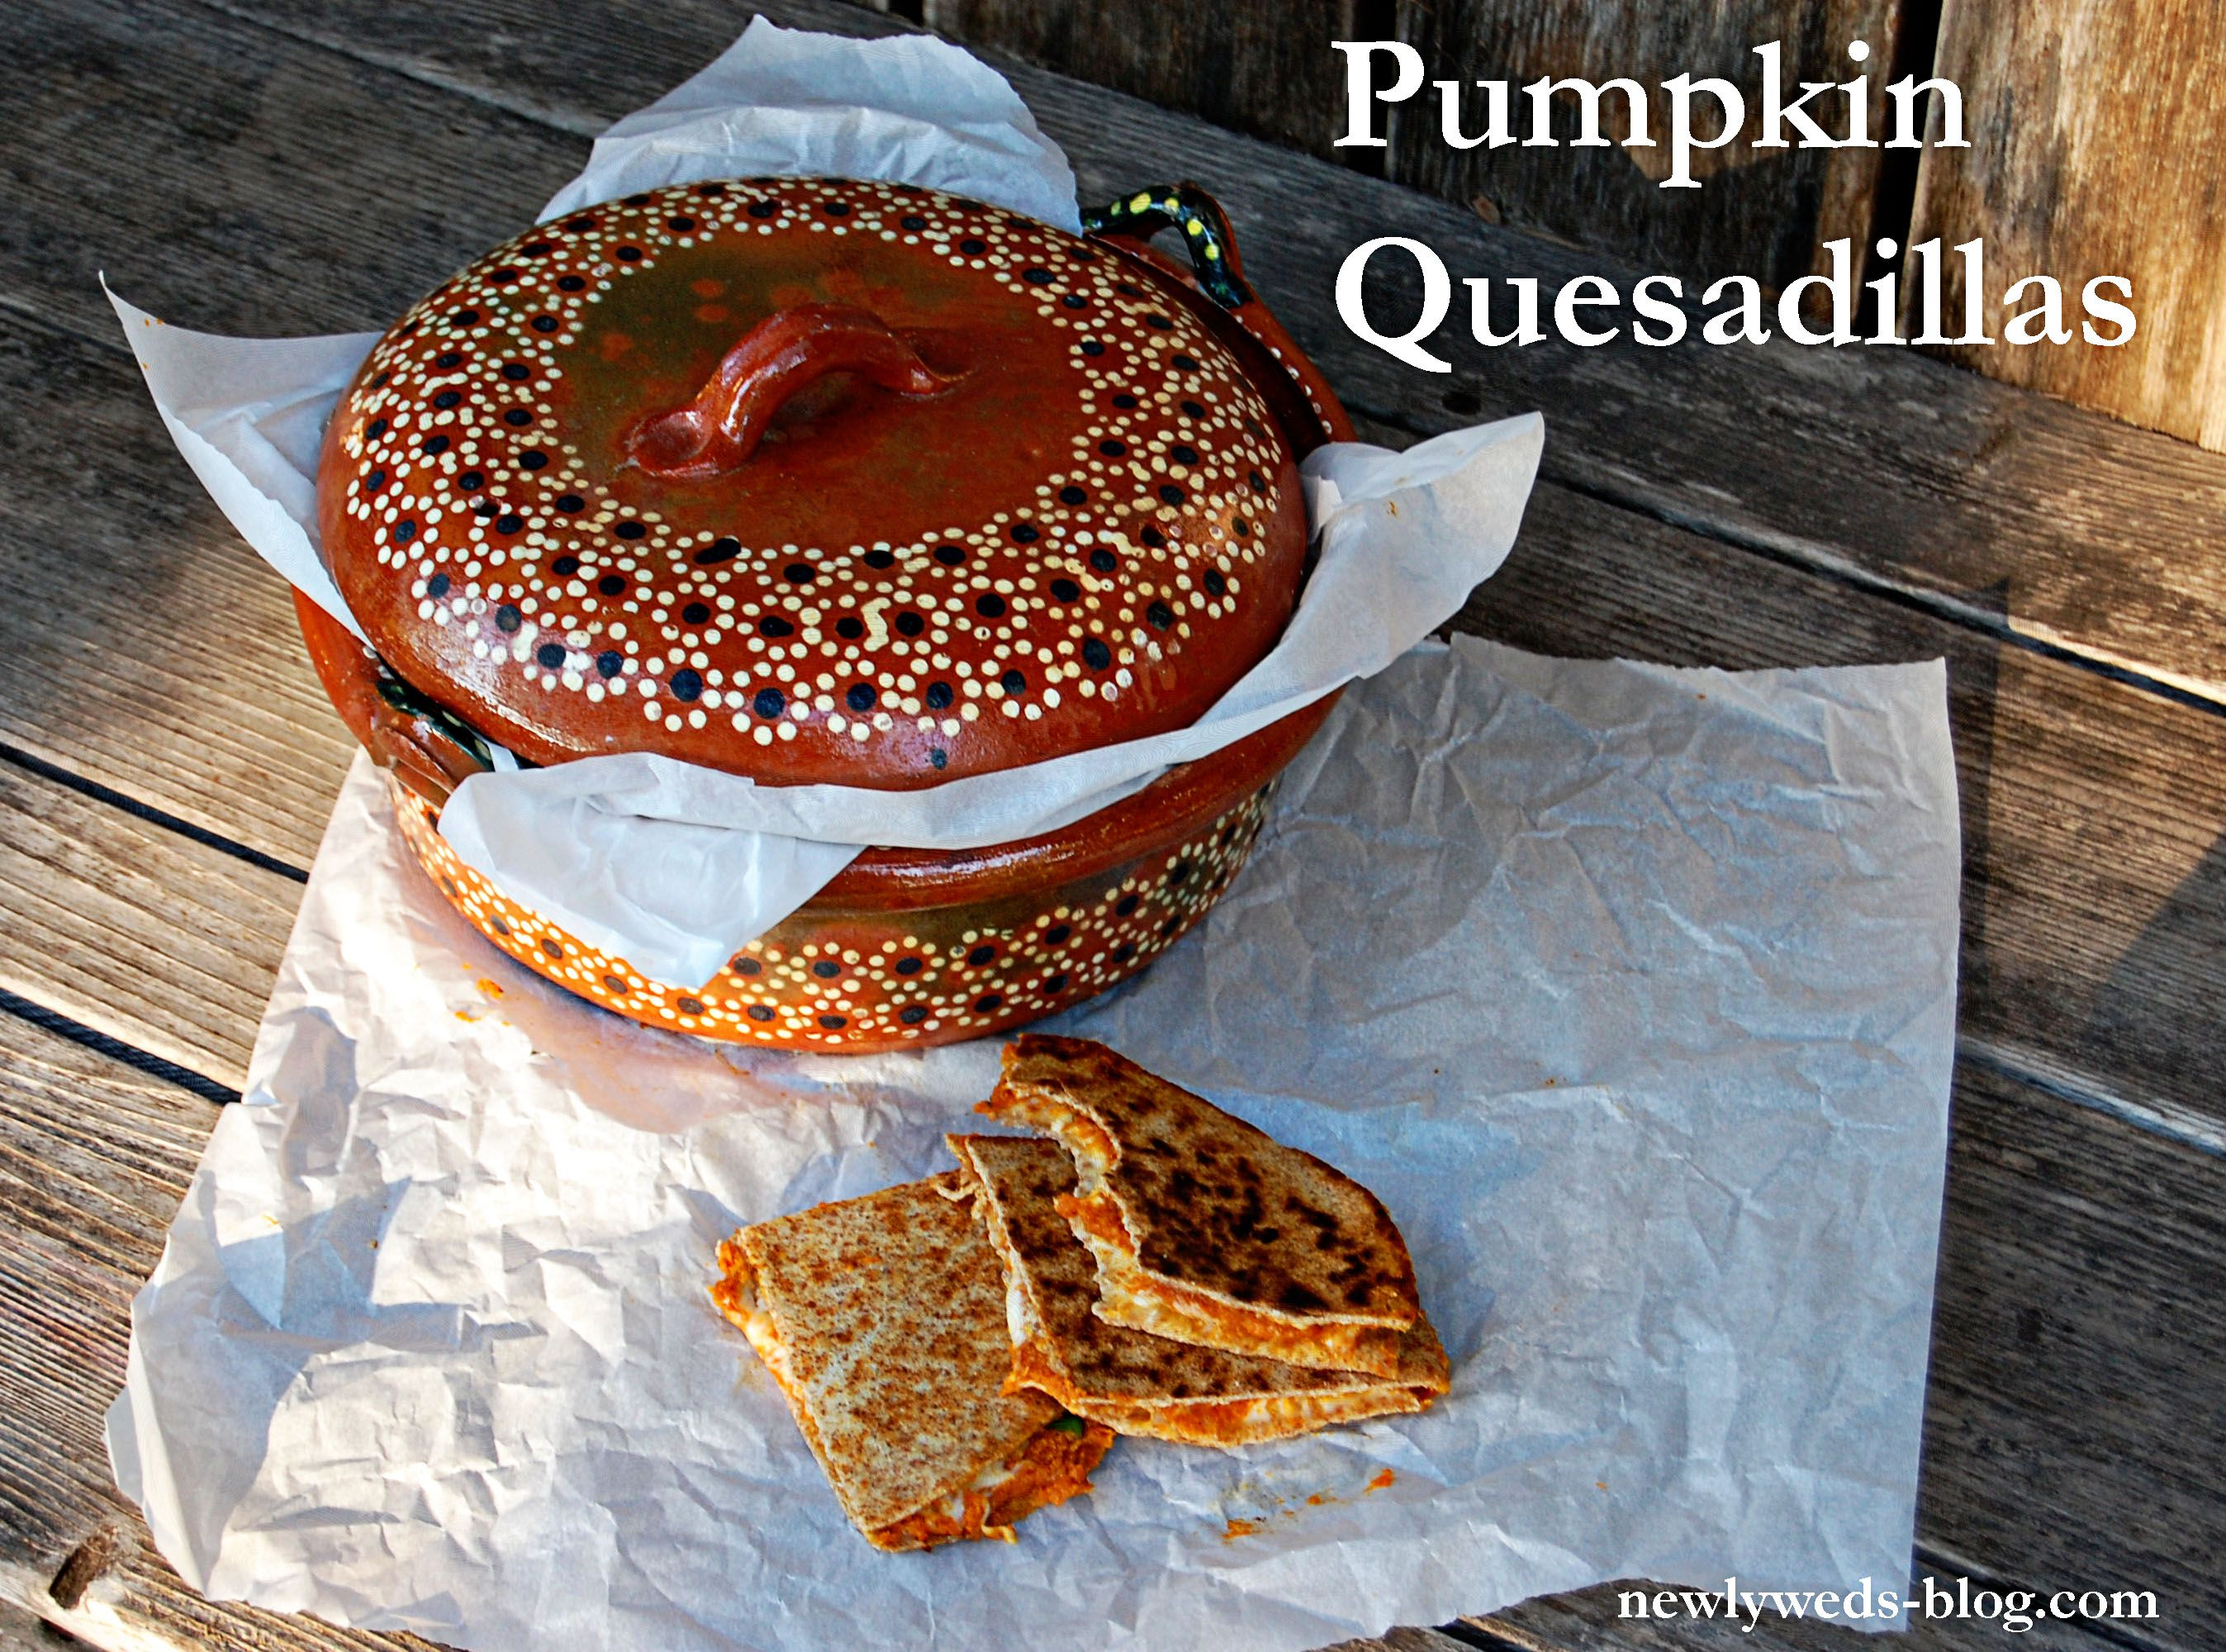 Pumpkin Quesadillas, yummy quick dinner that will have you going back for seconds.